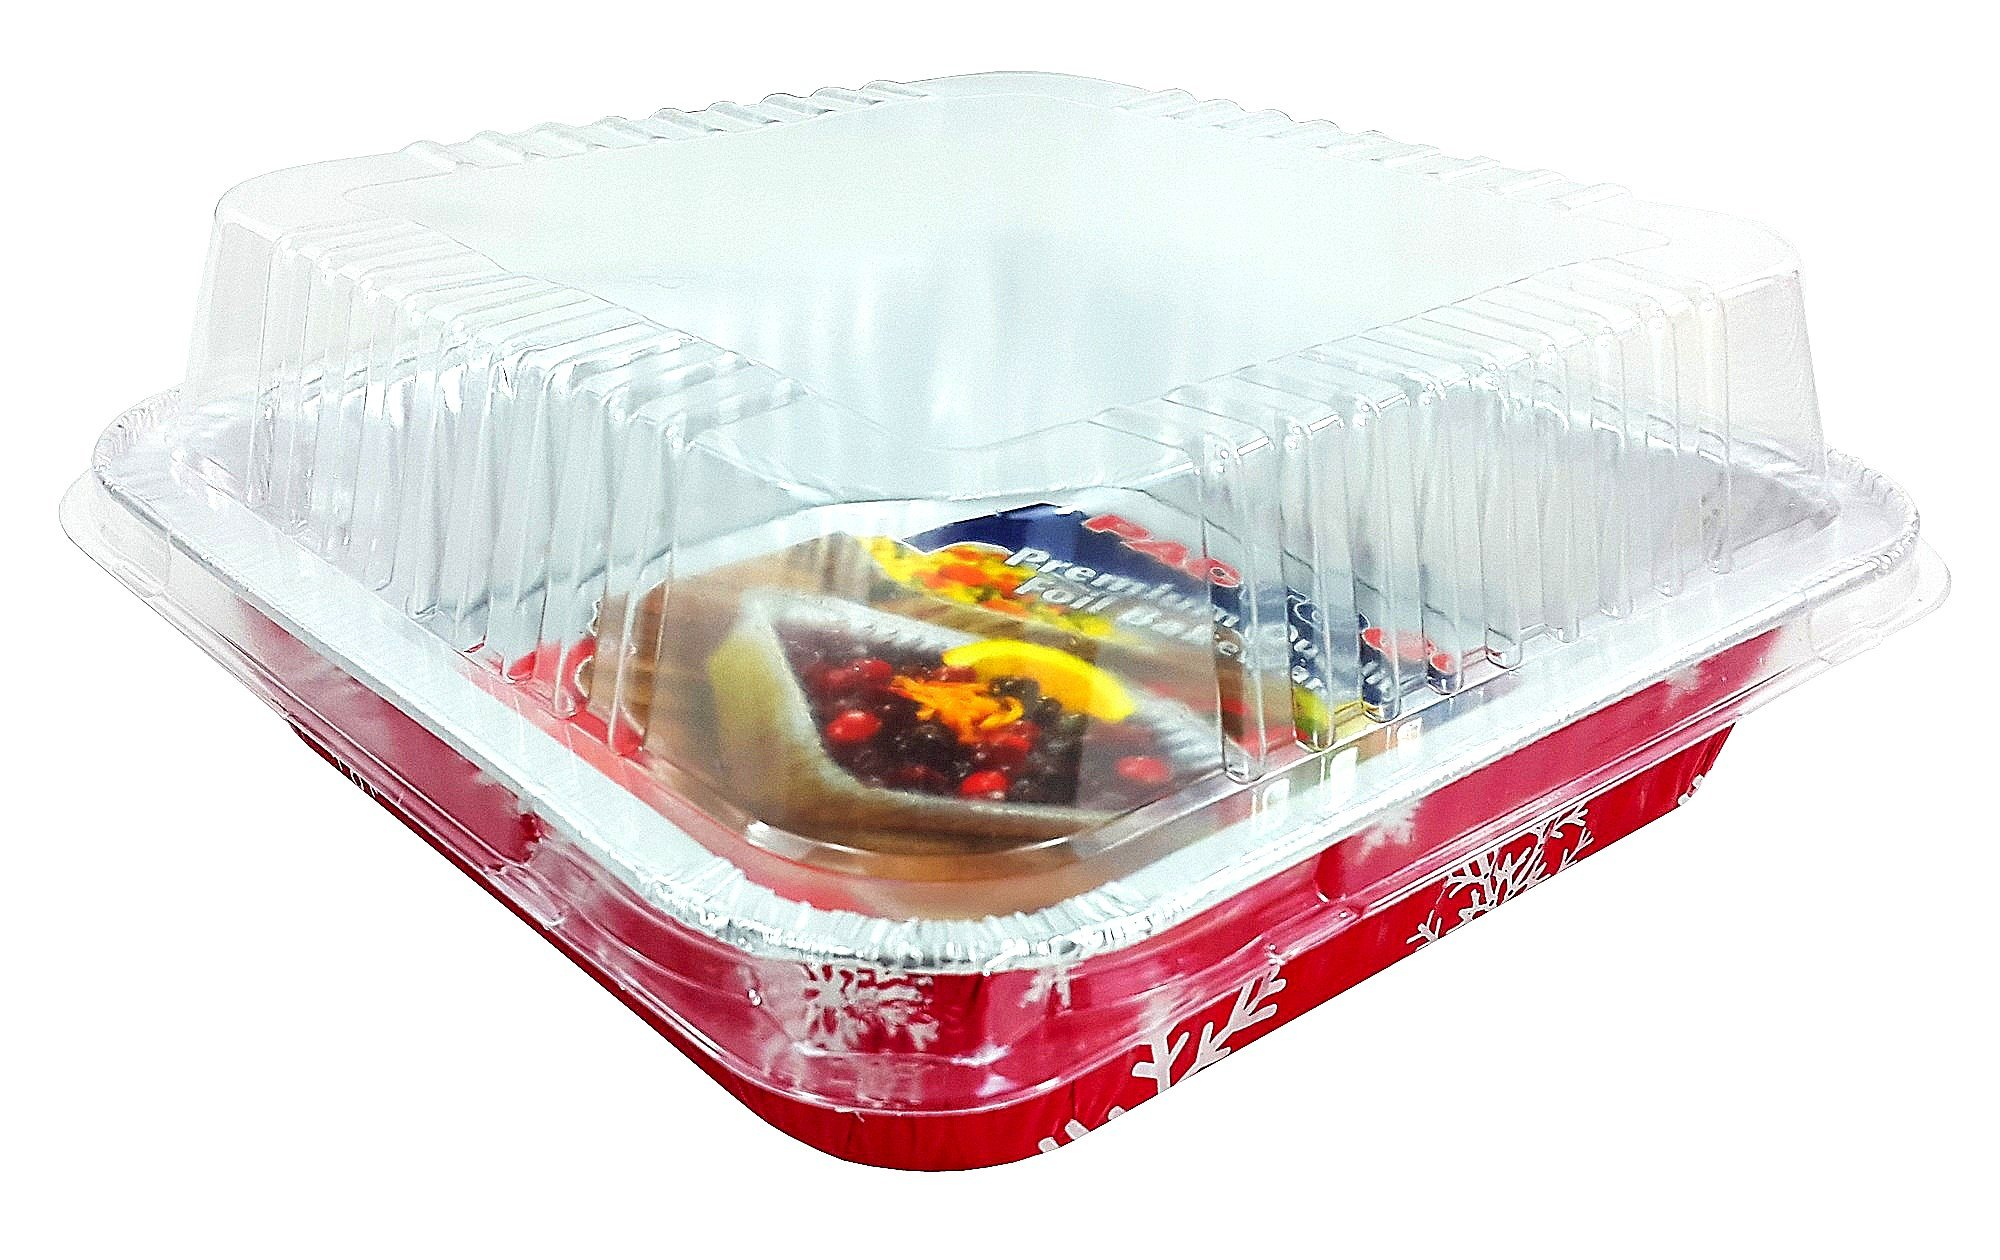 Pactogo Red Holiday Christmas Square Cake Aluminum Foil Pan w/Clear Dome Lid Disposable Baking Tins (Pack of 25 Sets) by PACTOGO (Image #4)